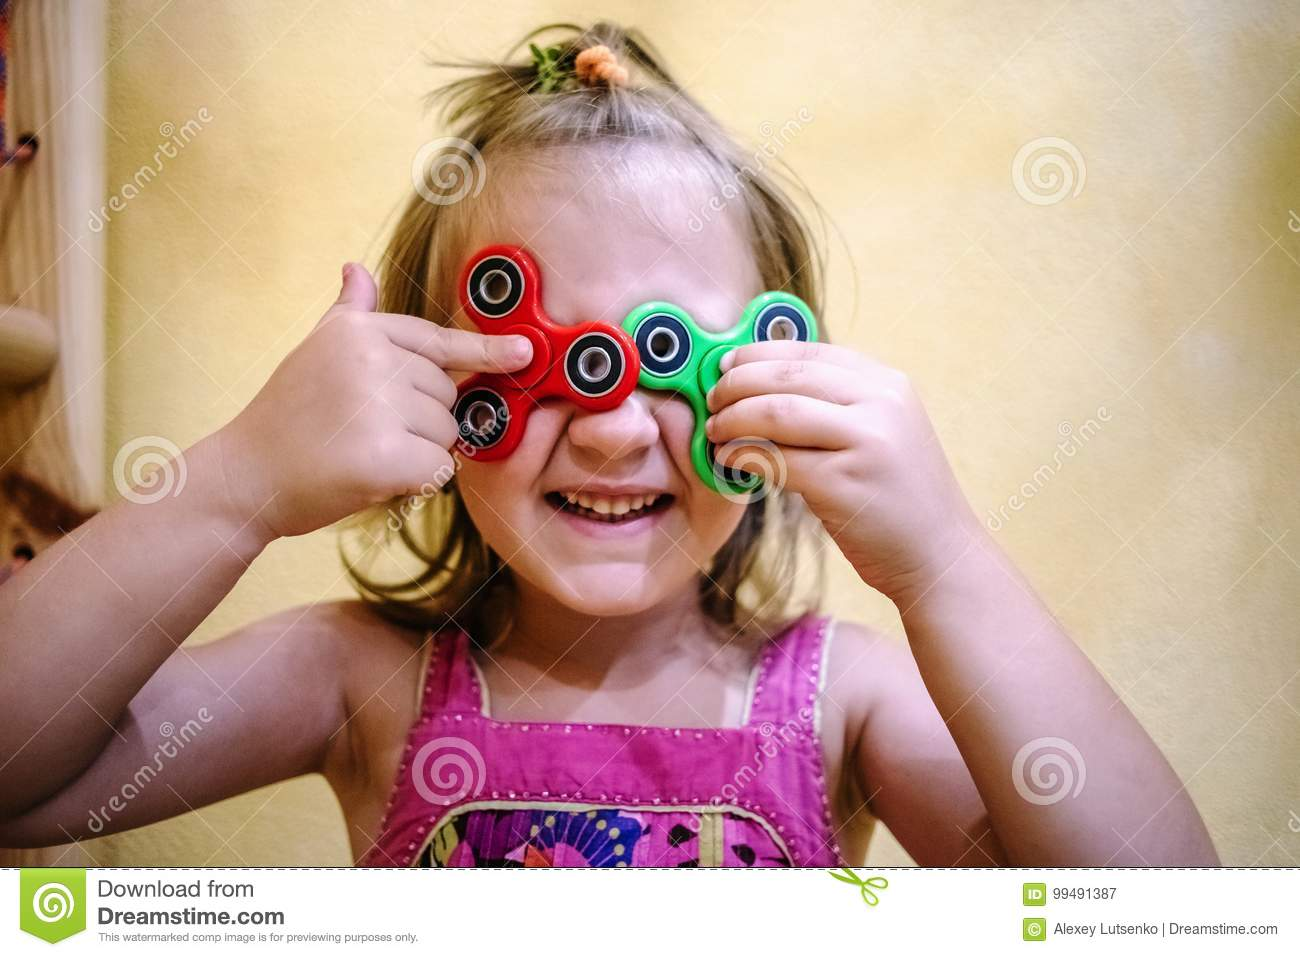 Little girl holds two fidget spinners on her face